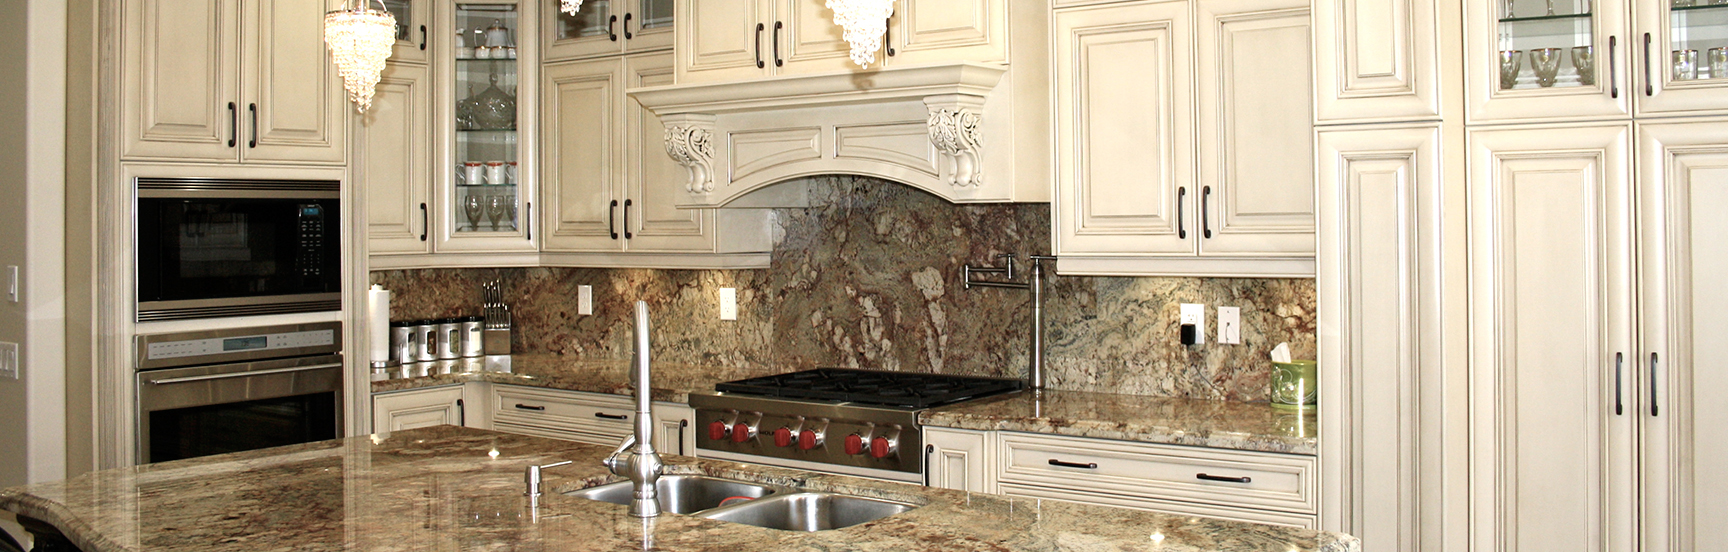 Good Custom Kitchen Oakville   Kitchen Cabinets Burlington   Kitchen ...